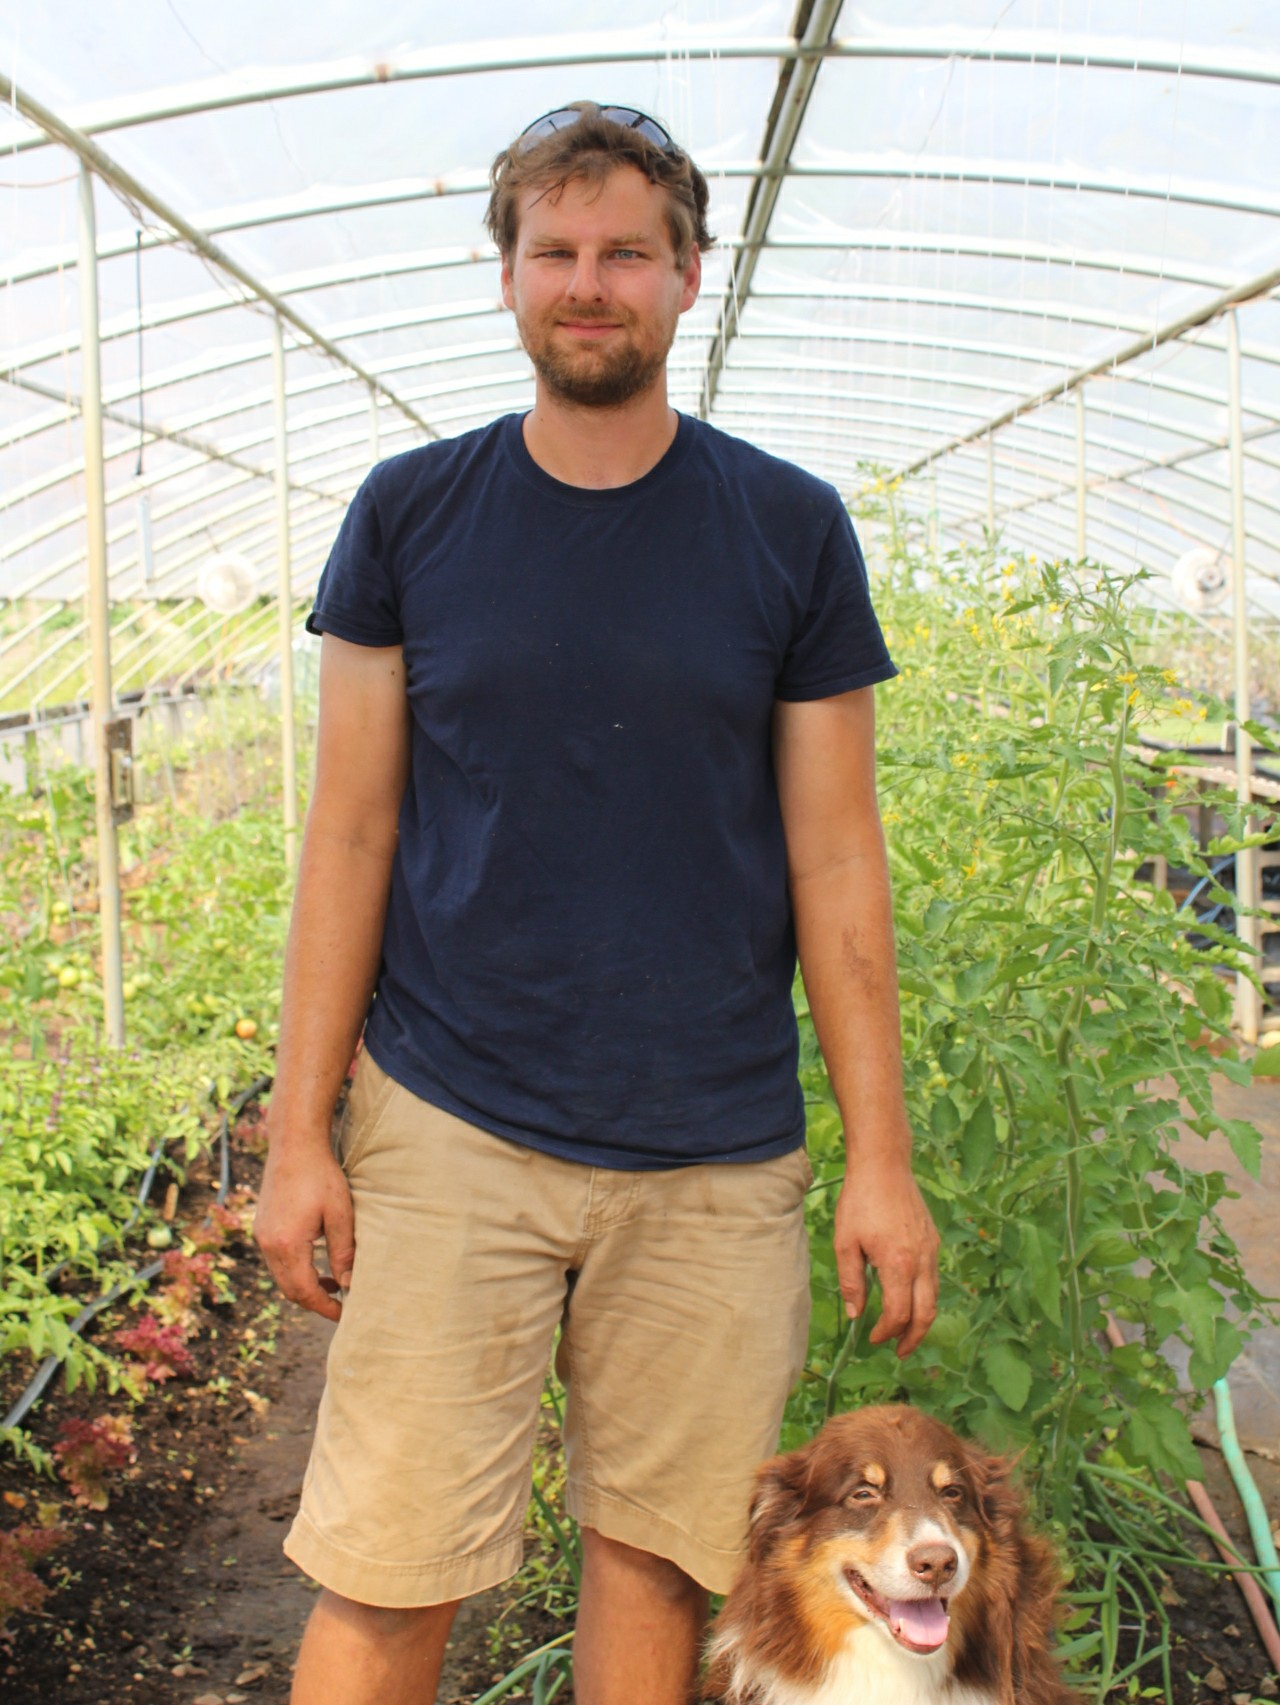 Matt and Buddy in the tomato production greenhouse. July 10th, 2018.